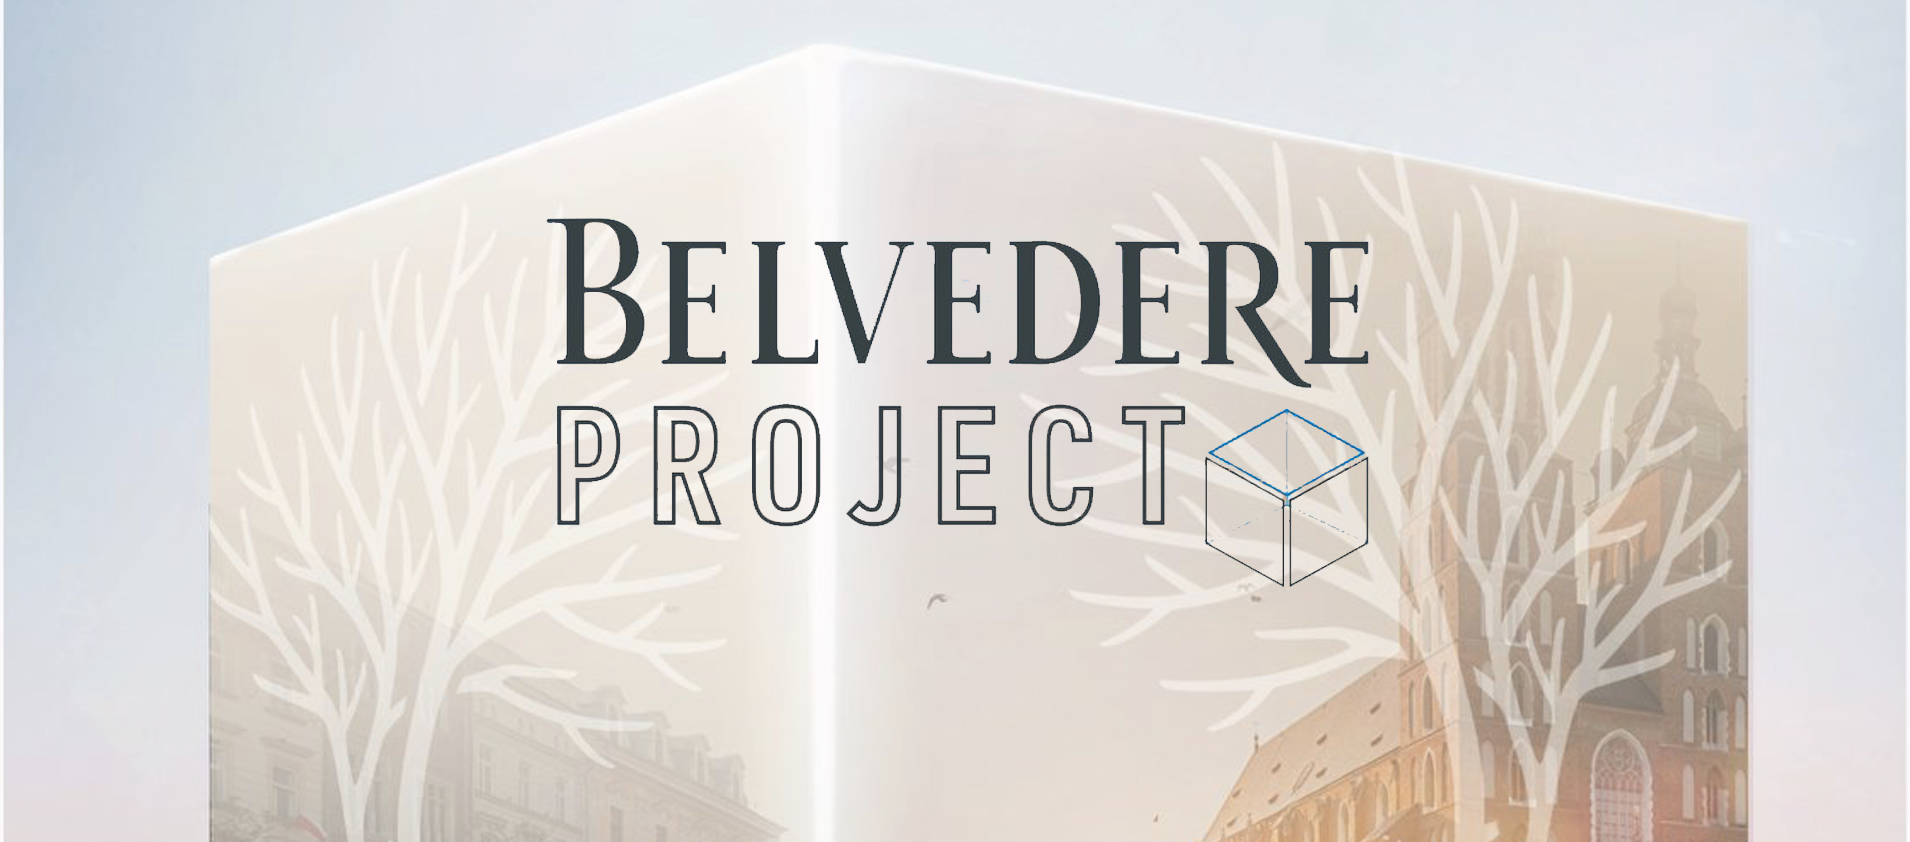 Belvedere Project